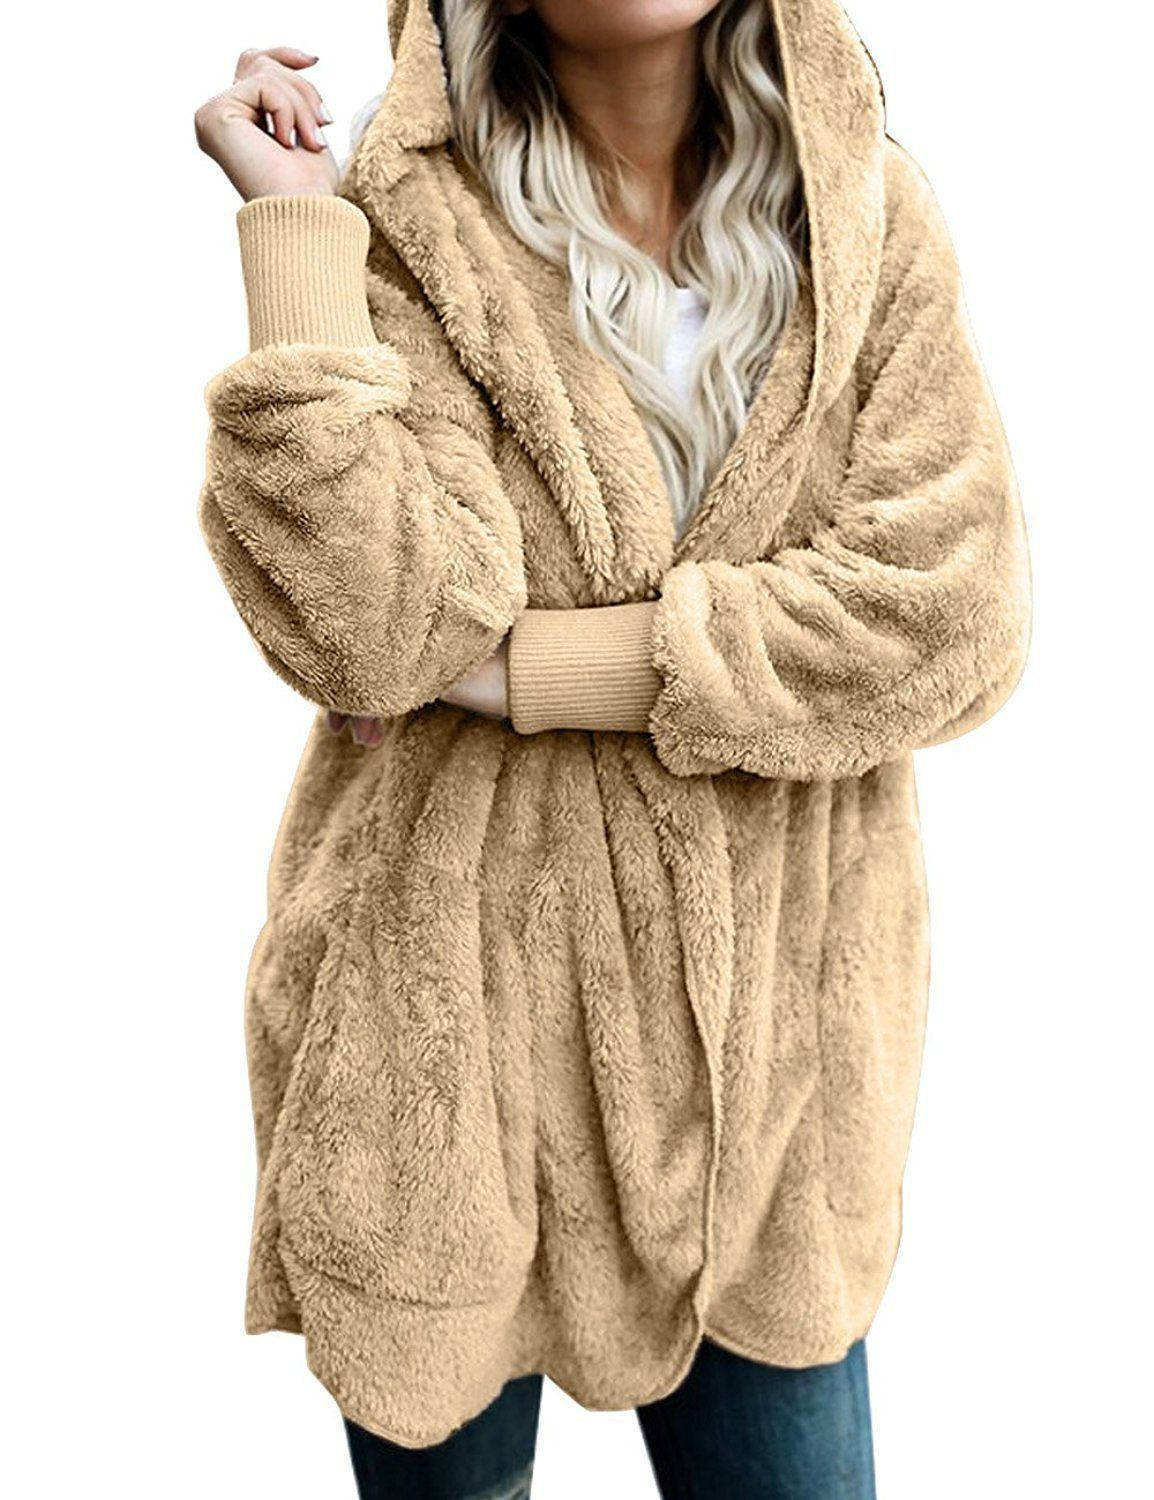 adf587ec94 Material  95% Polyester   5% Spandex - Imported - Women oversized cozy  cardigan features hooded at back and draped open front. Long sleeves with  ribbed ...